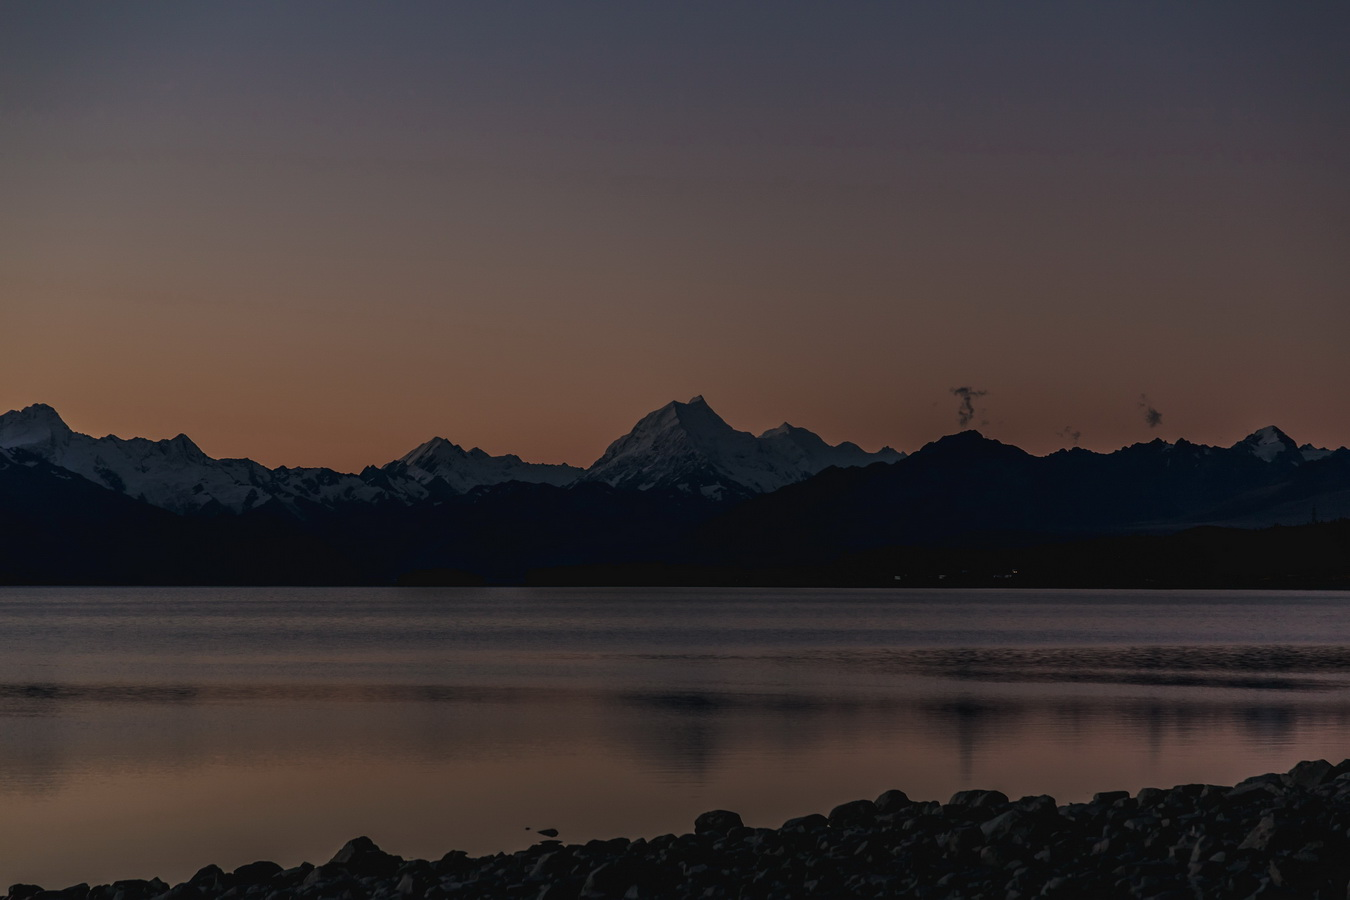 sunset, Lake Pukaki,Mount Cook,Aoraki, Mount Cook National Park, South Island ,New Zealand